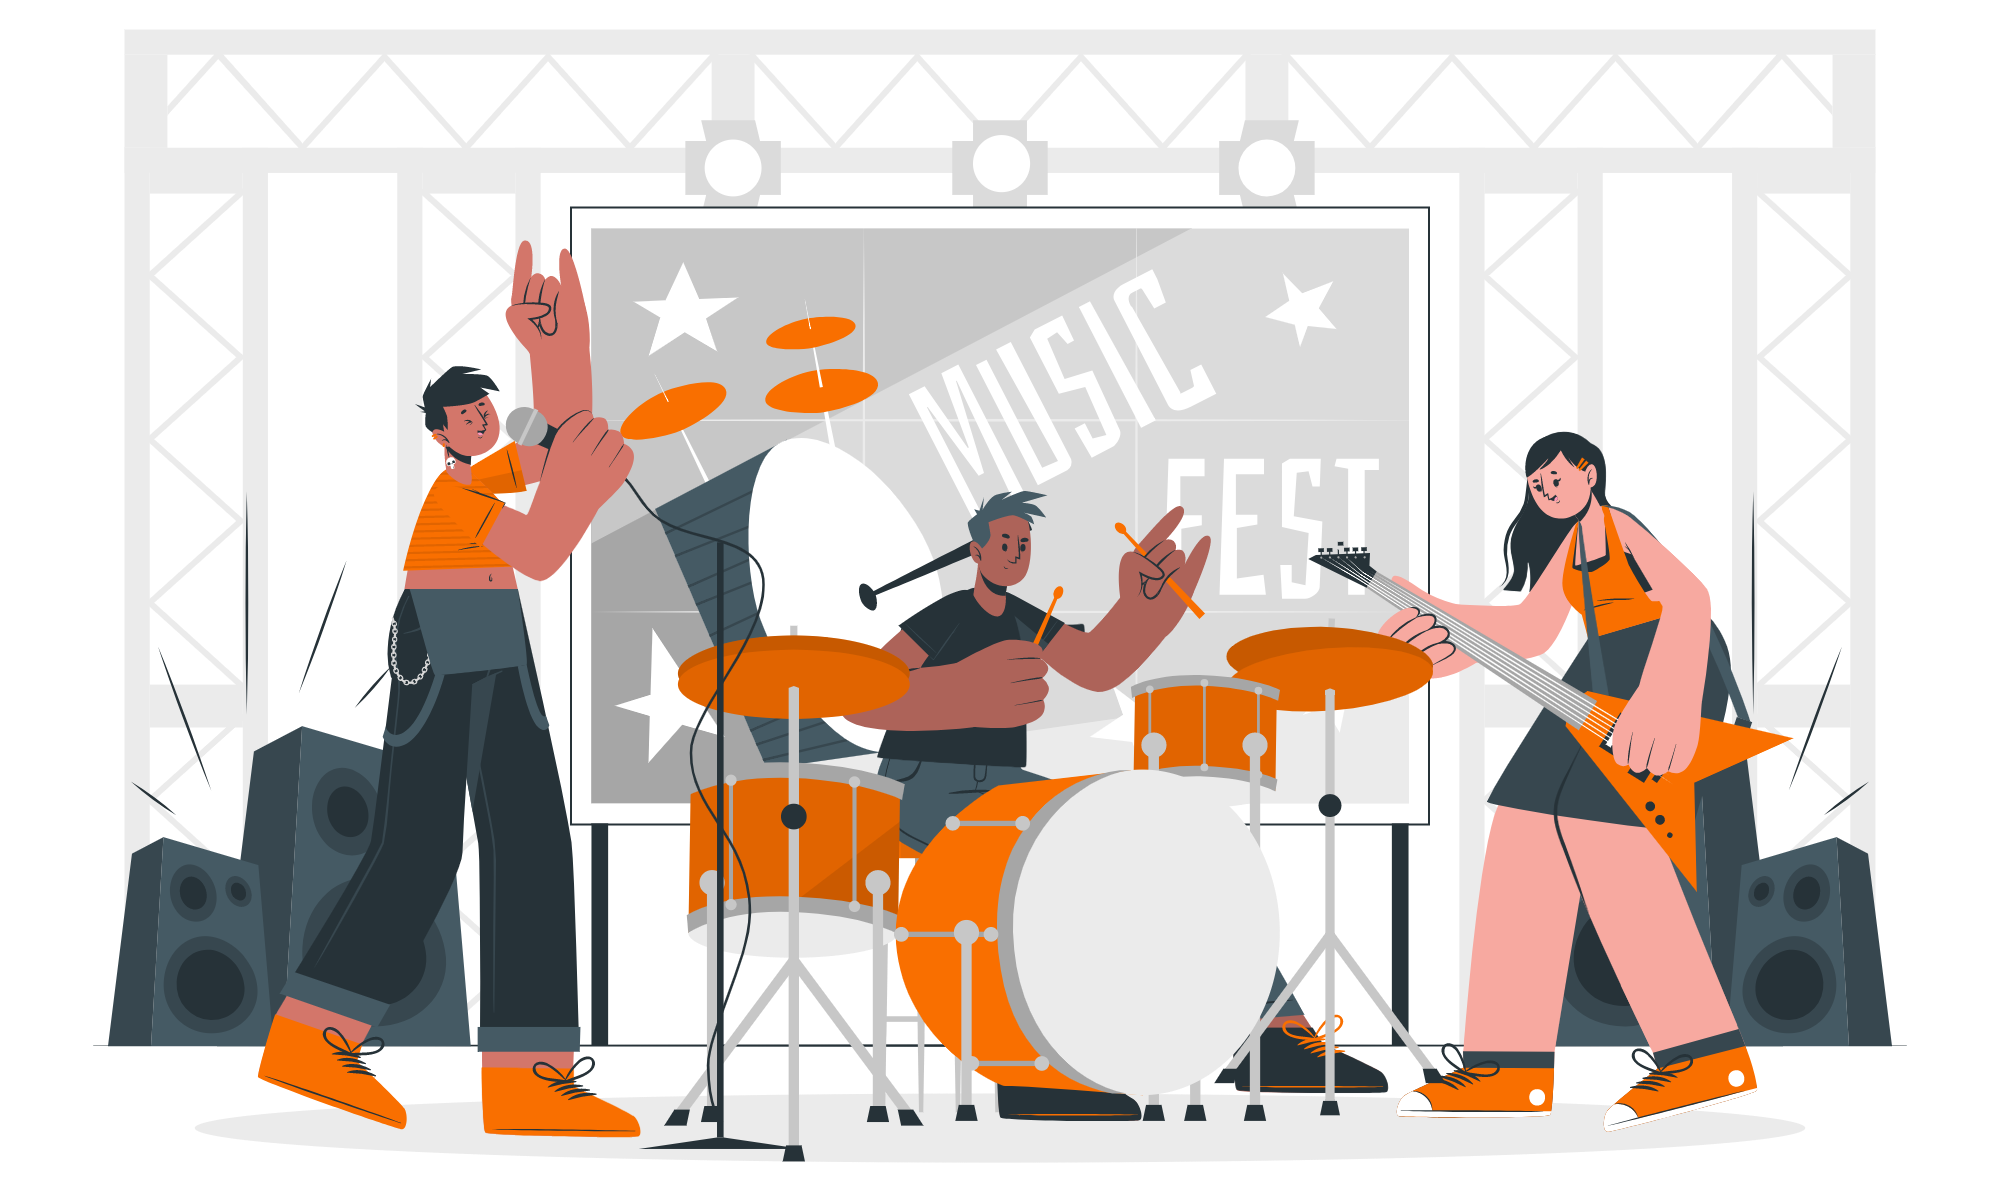 Cartoon graphics banner for free band name generator from Student of Guitar